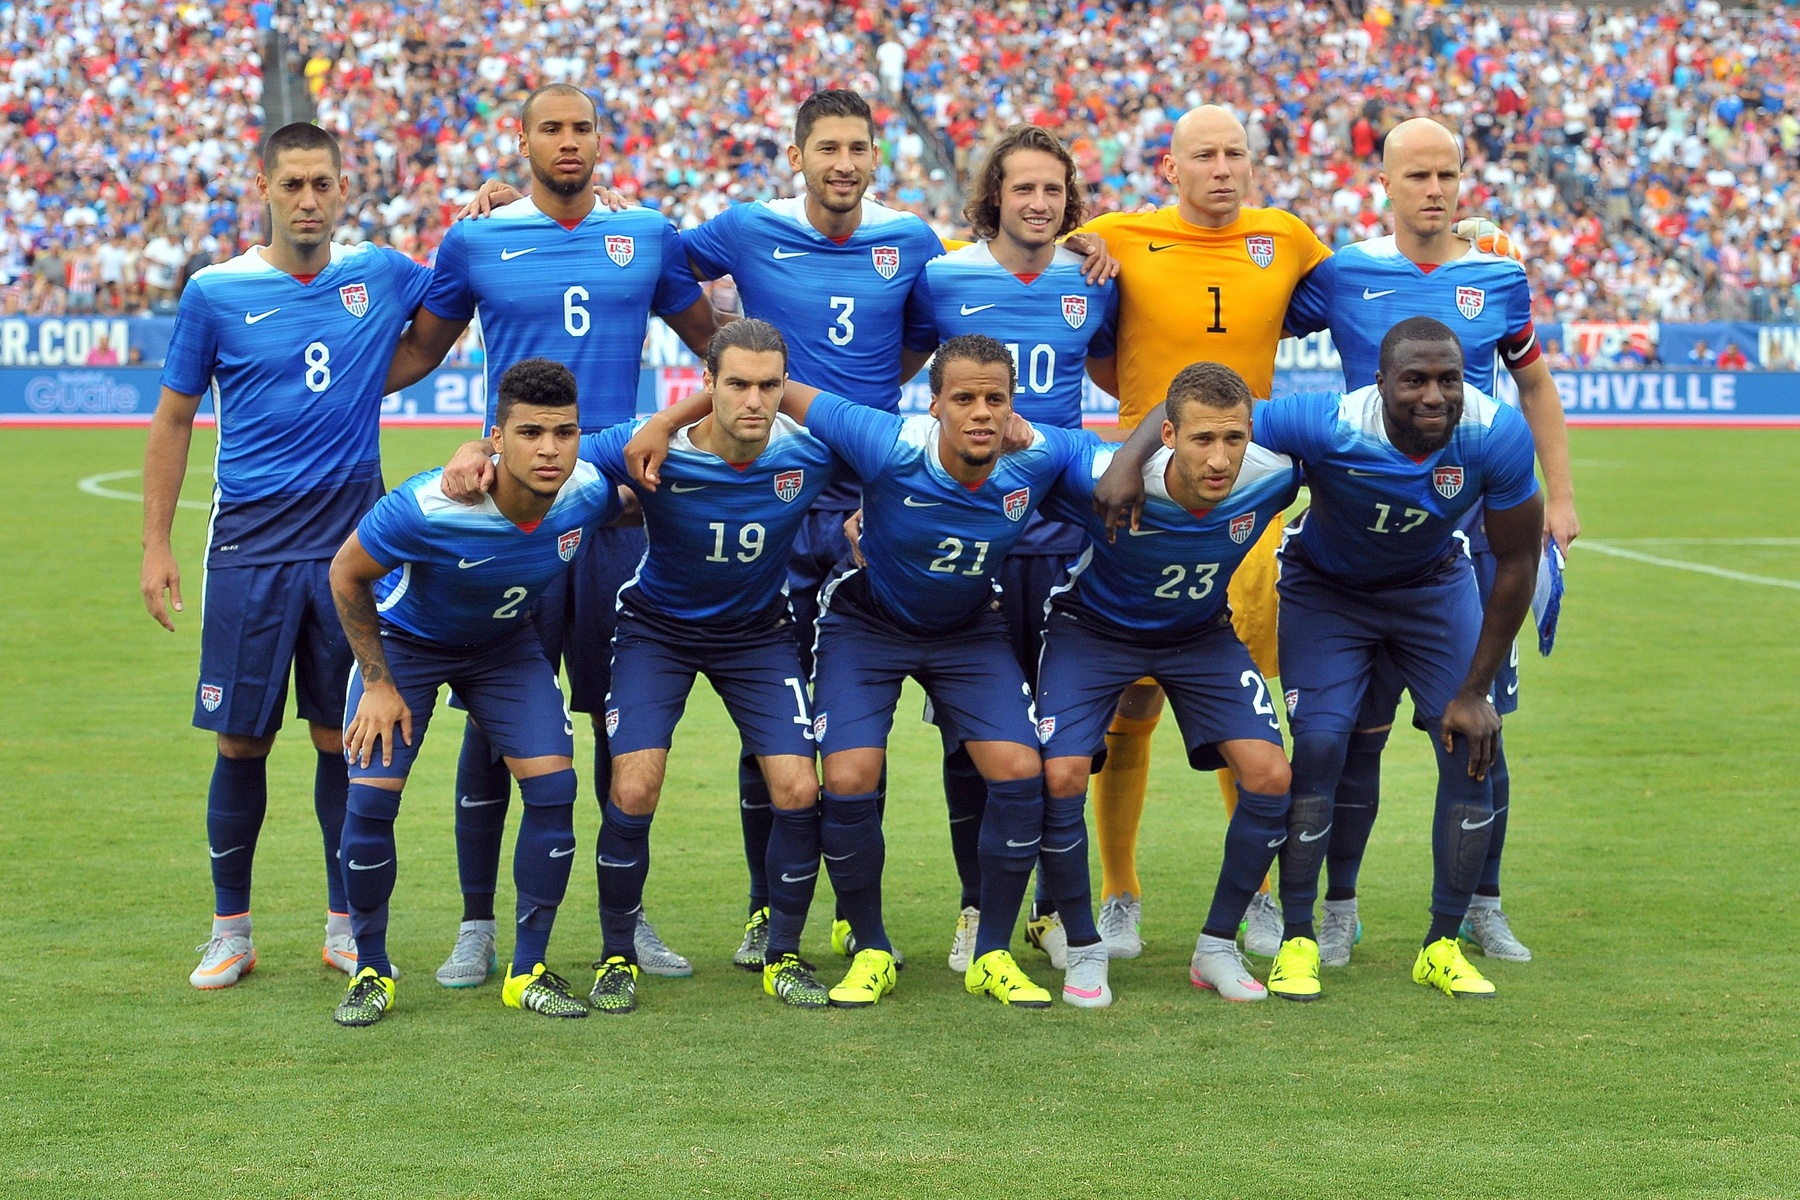 ... points against Guatemala in World Cup qualifier - World Soccer Talk